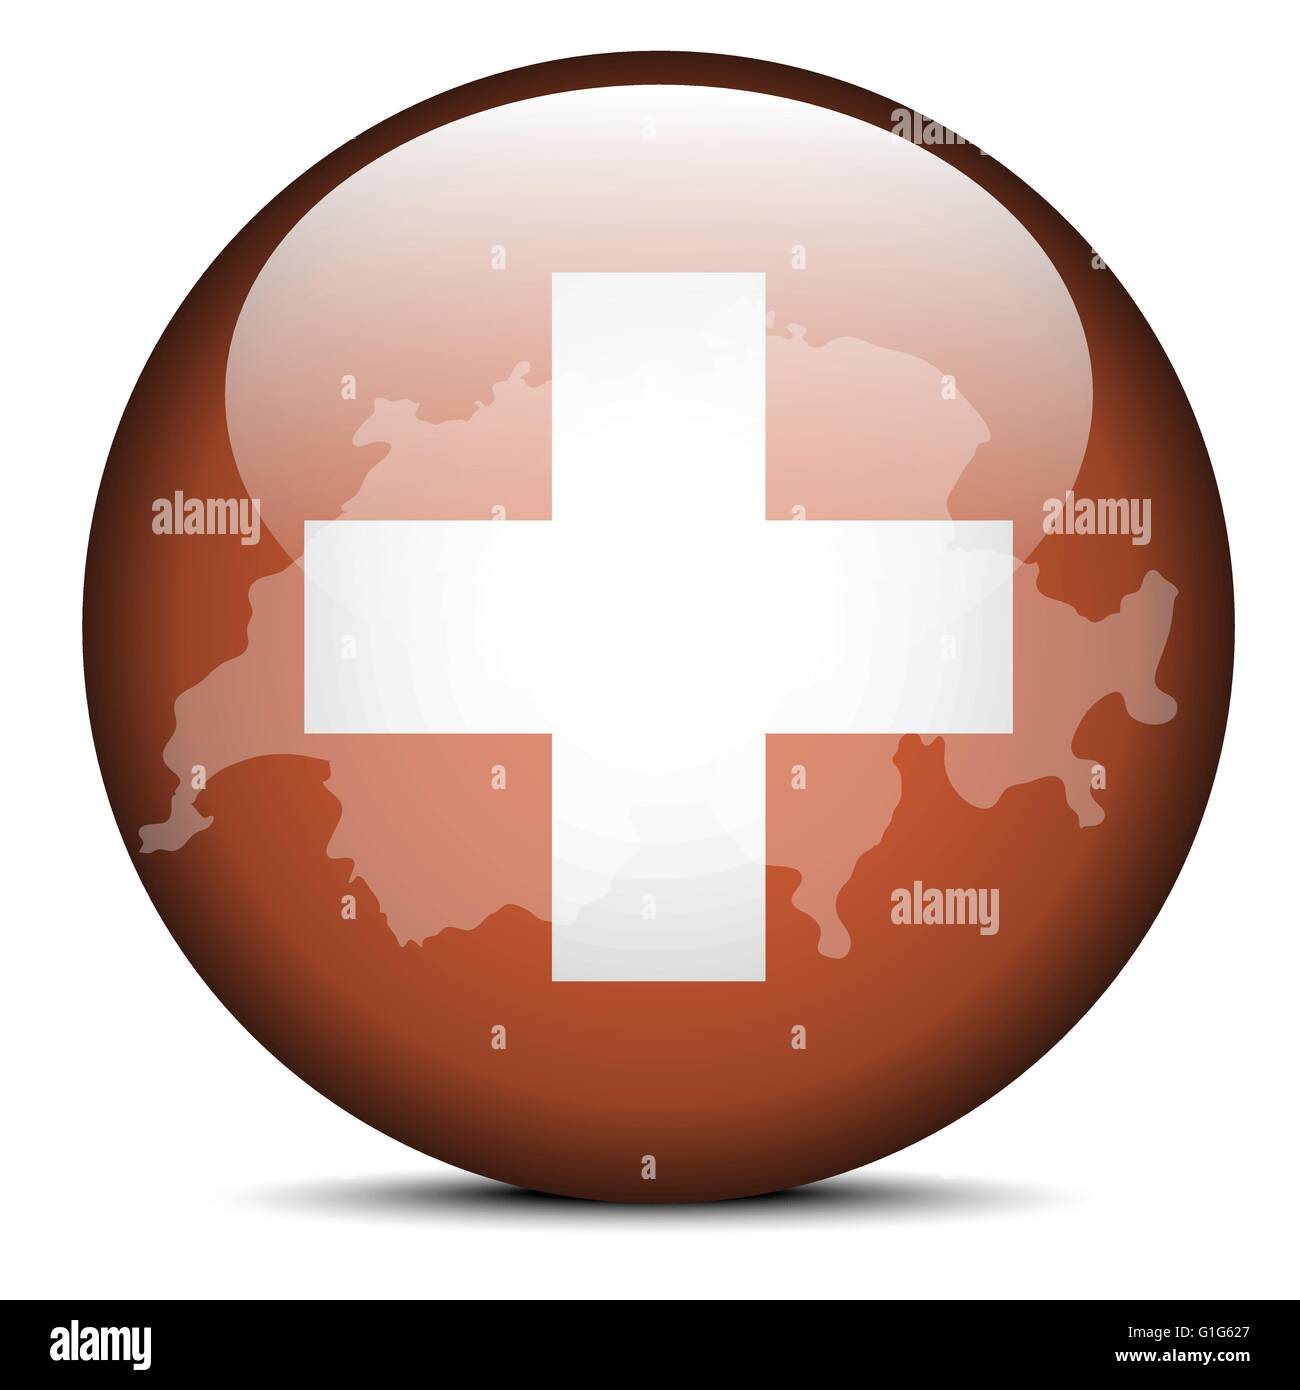 Vector Image - Map on flag button of Switzerland, Swiss Confederation - Stock Image